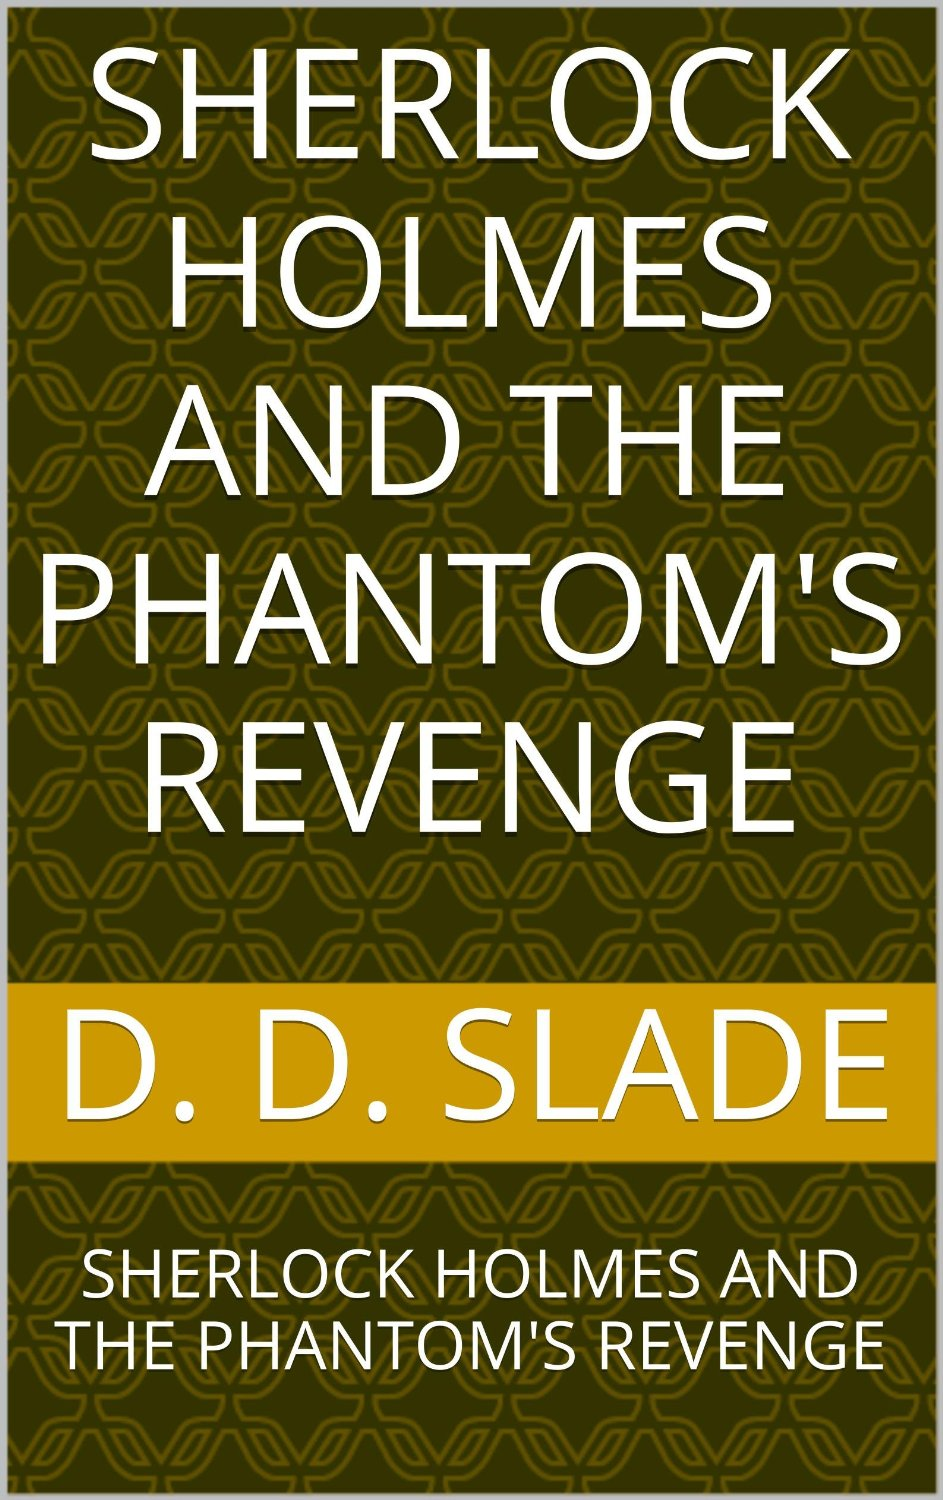 Sherlock Holmes And The Phantom's Revenge